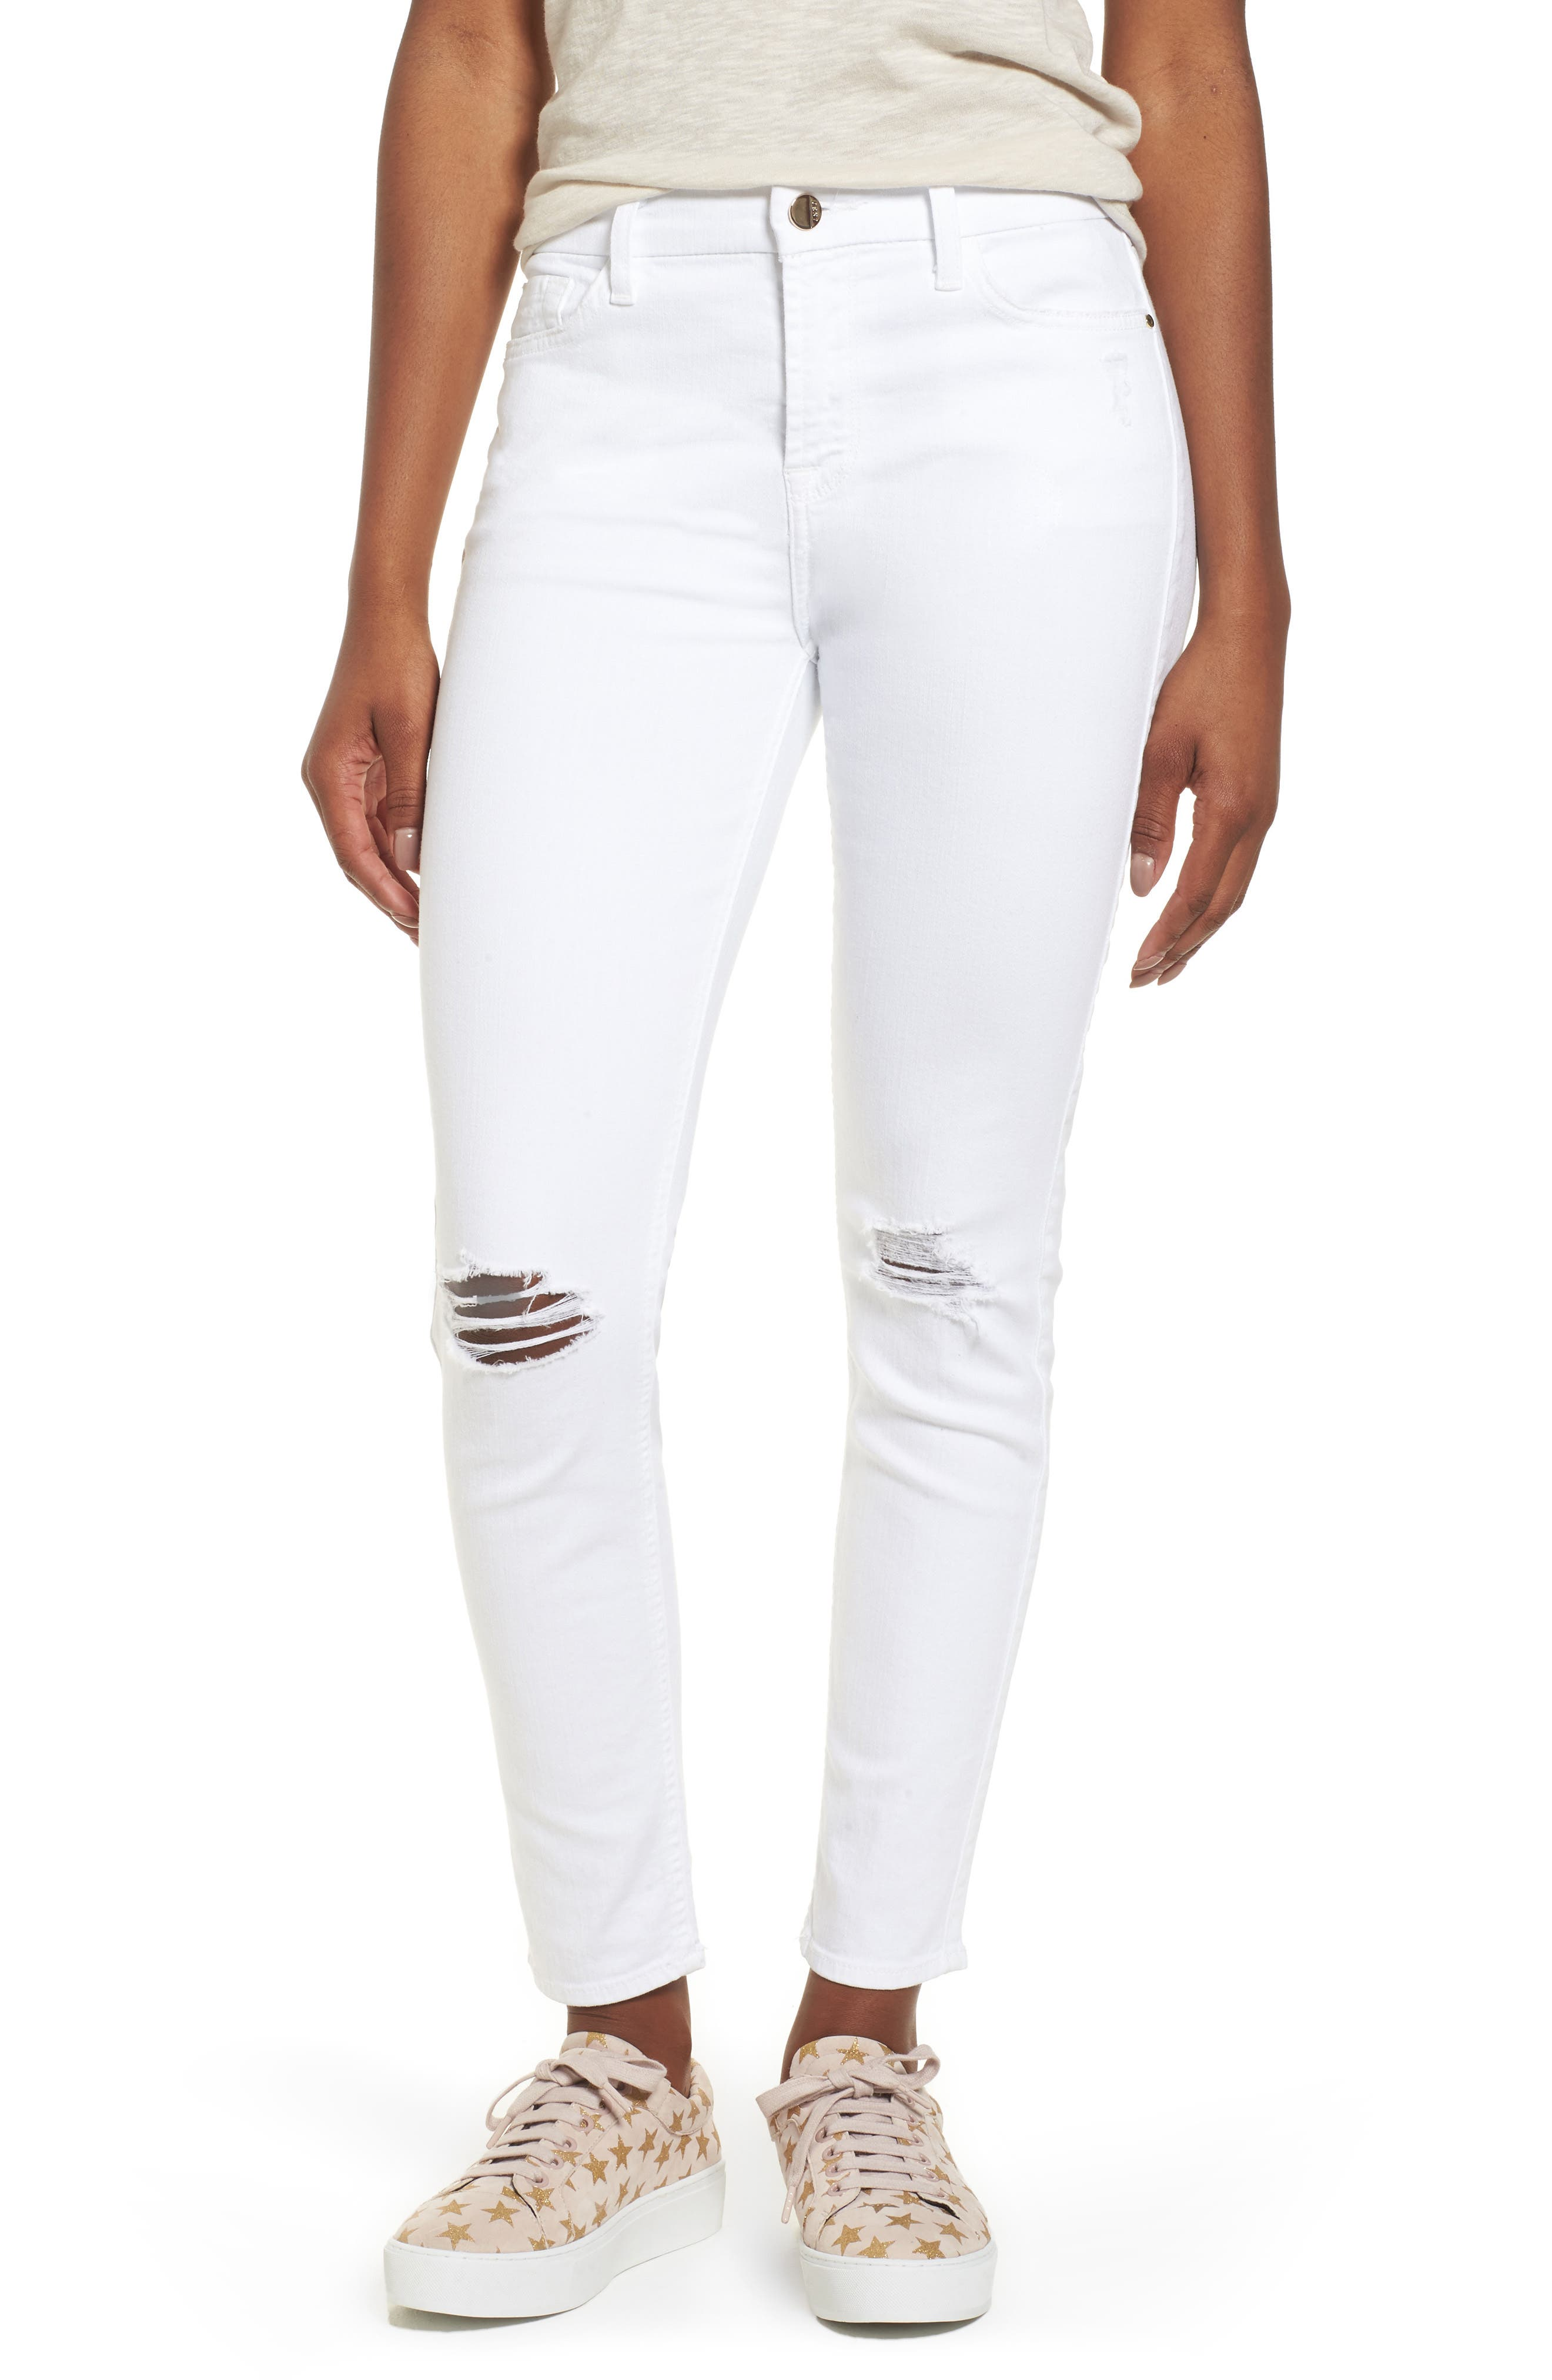 JEN7 BY 7 FOR ALL MANKIND Ankle Skinny Jeans, Main, color, WHITE 2